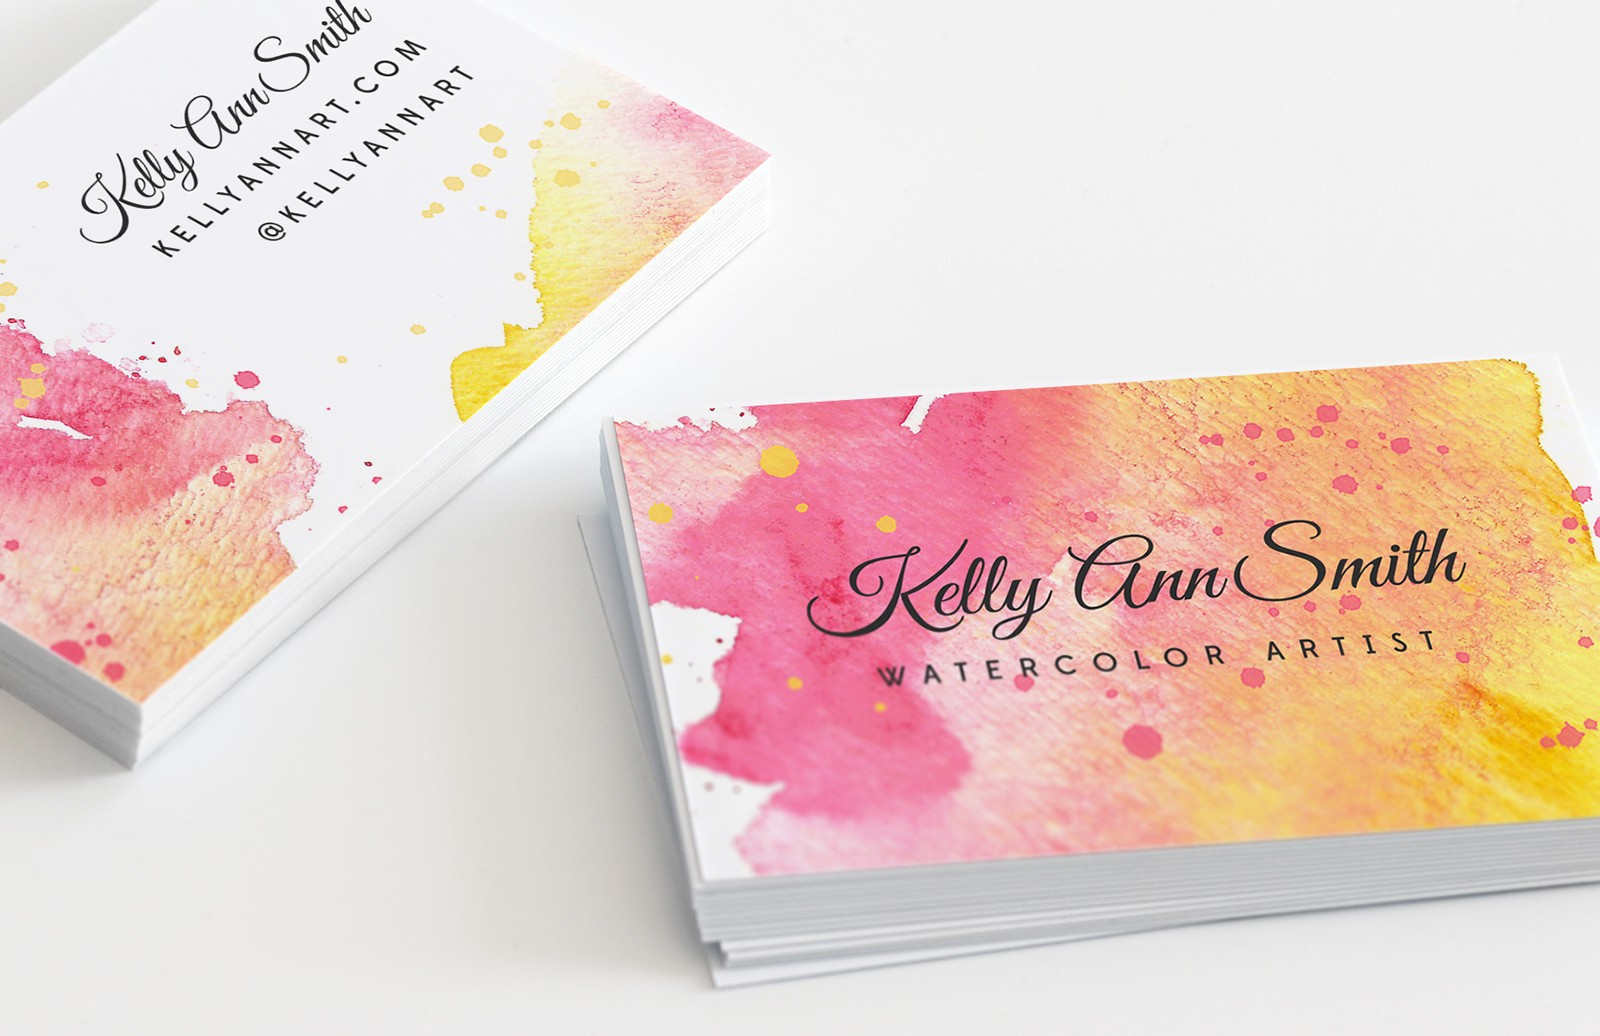 Watercolor artist business card template medialoot watercolor artist business card template preview 1 colourmoves